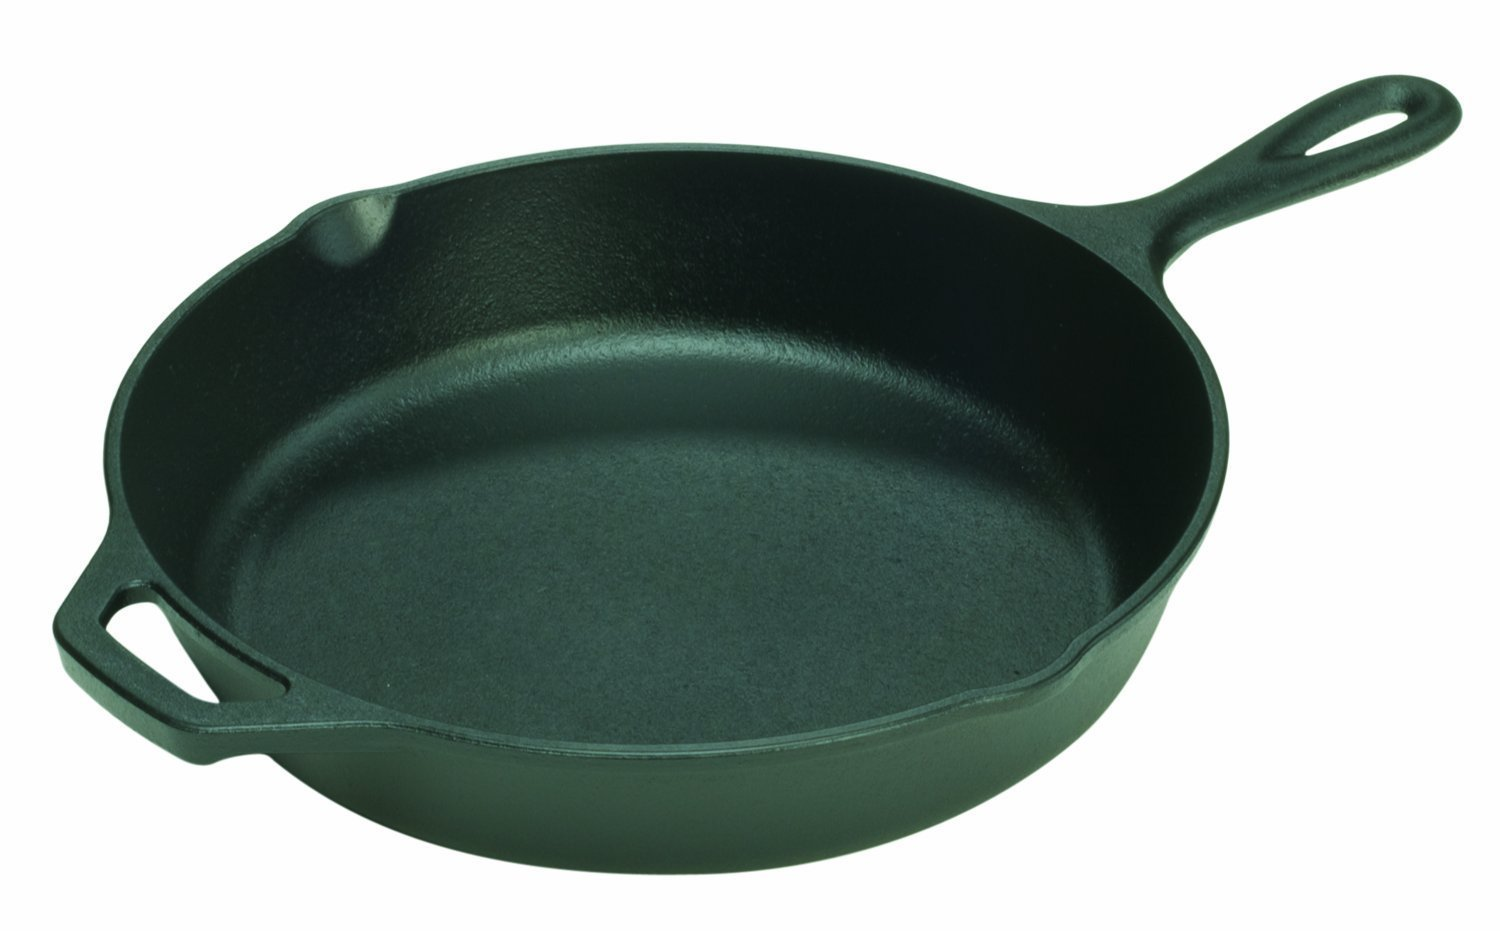 A product image of a cast iron skillet on a list of the top 6 best kitchen tools for real foodies